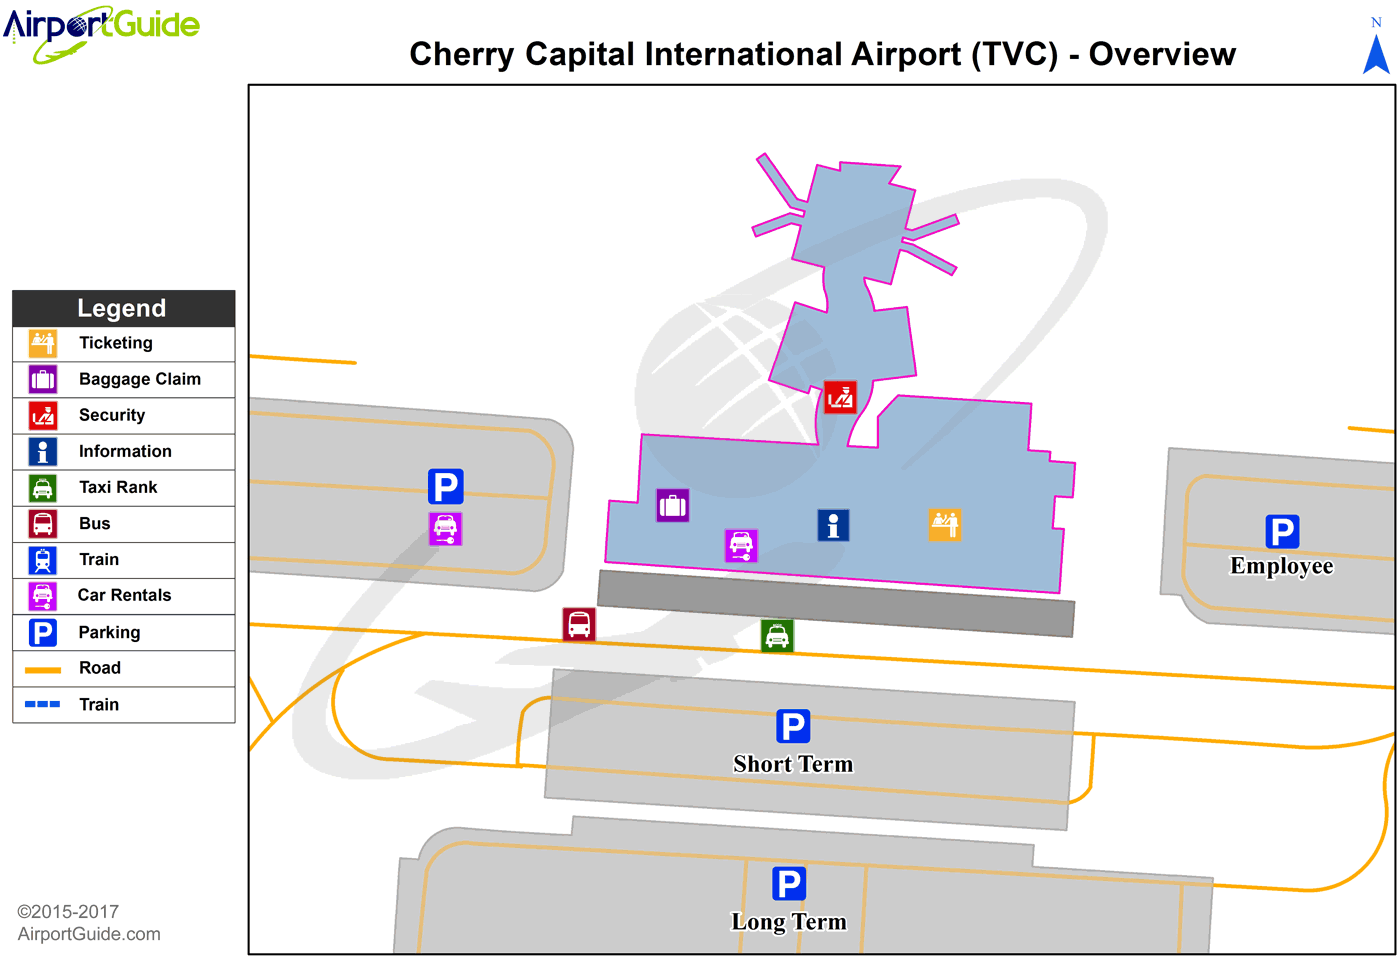 Traverse City - Cherry Capital (TVC) Airport Terminal Map - Overview